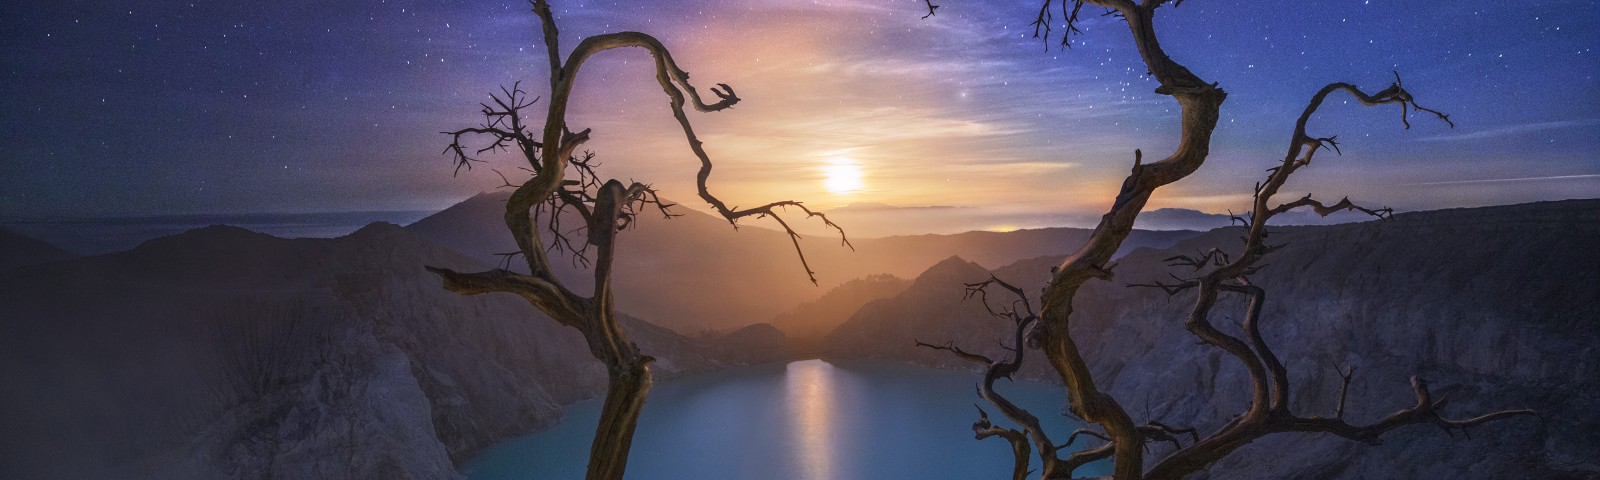 A fine art photograph of bare tree branches framing a moon and lake setting with purple clouds and stars